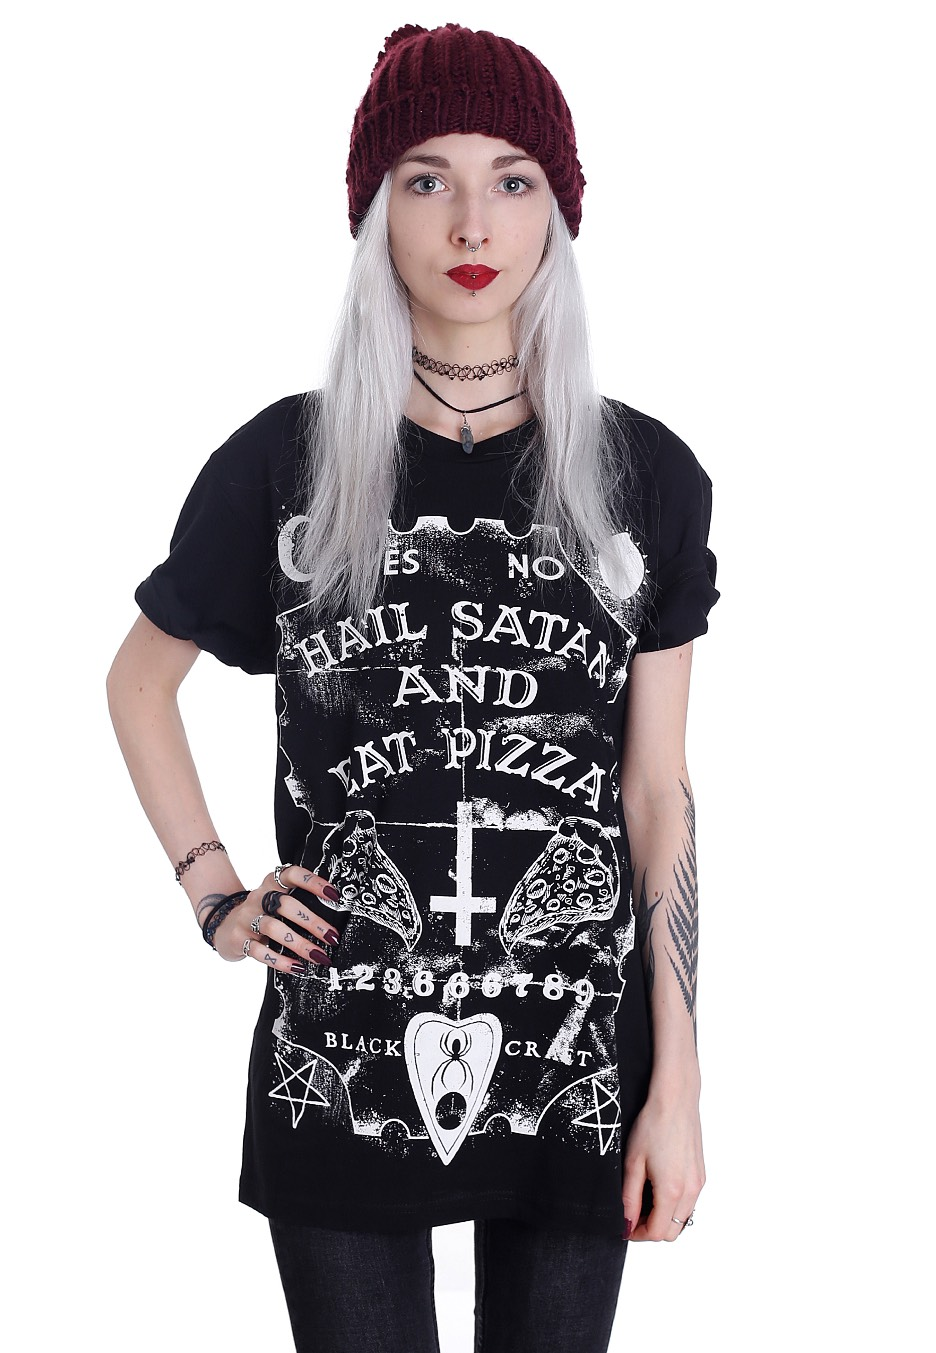 Black Craft Cult - Hail Satan Eat Pizza - T-Shirt - Streetwear Shop - Impericoncom Uk-5233